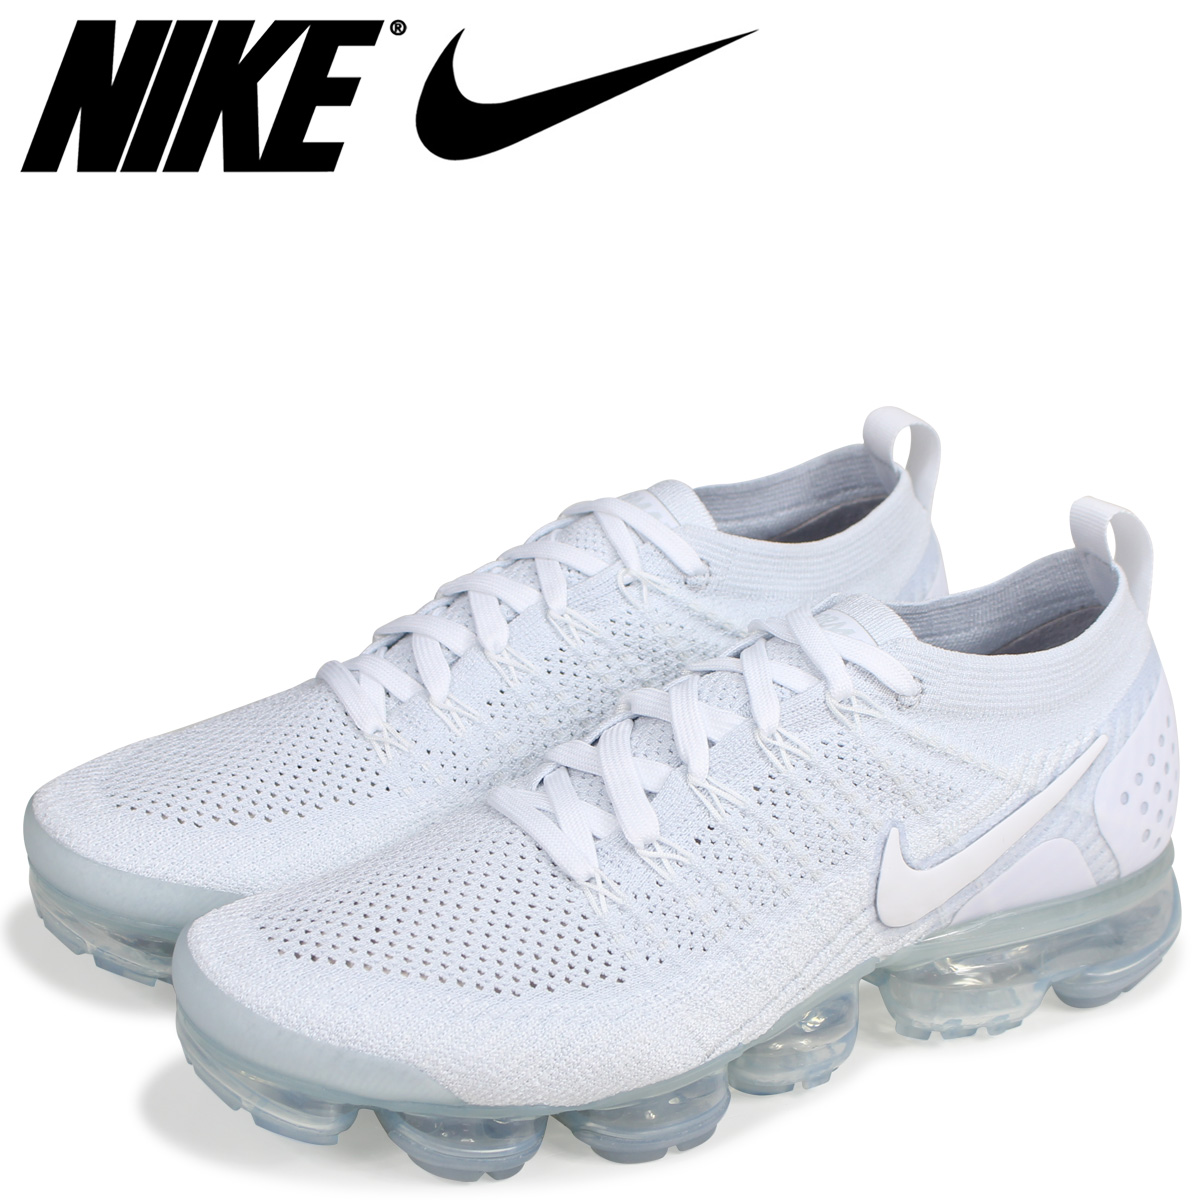 a699e73ce1040 Sugar Online Shop  NIKE Nike air vapor max fried food knit 2 ...